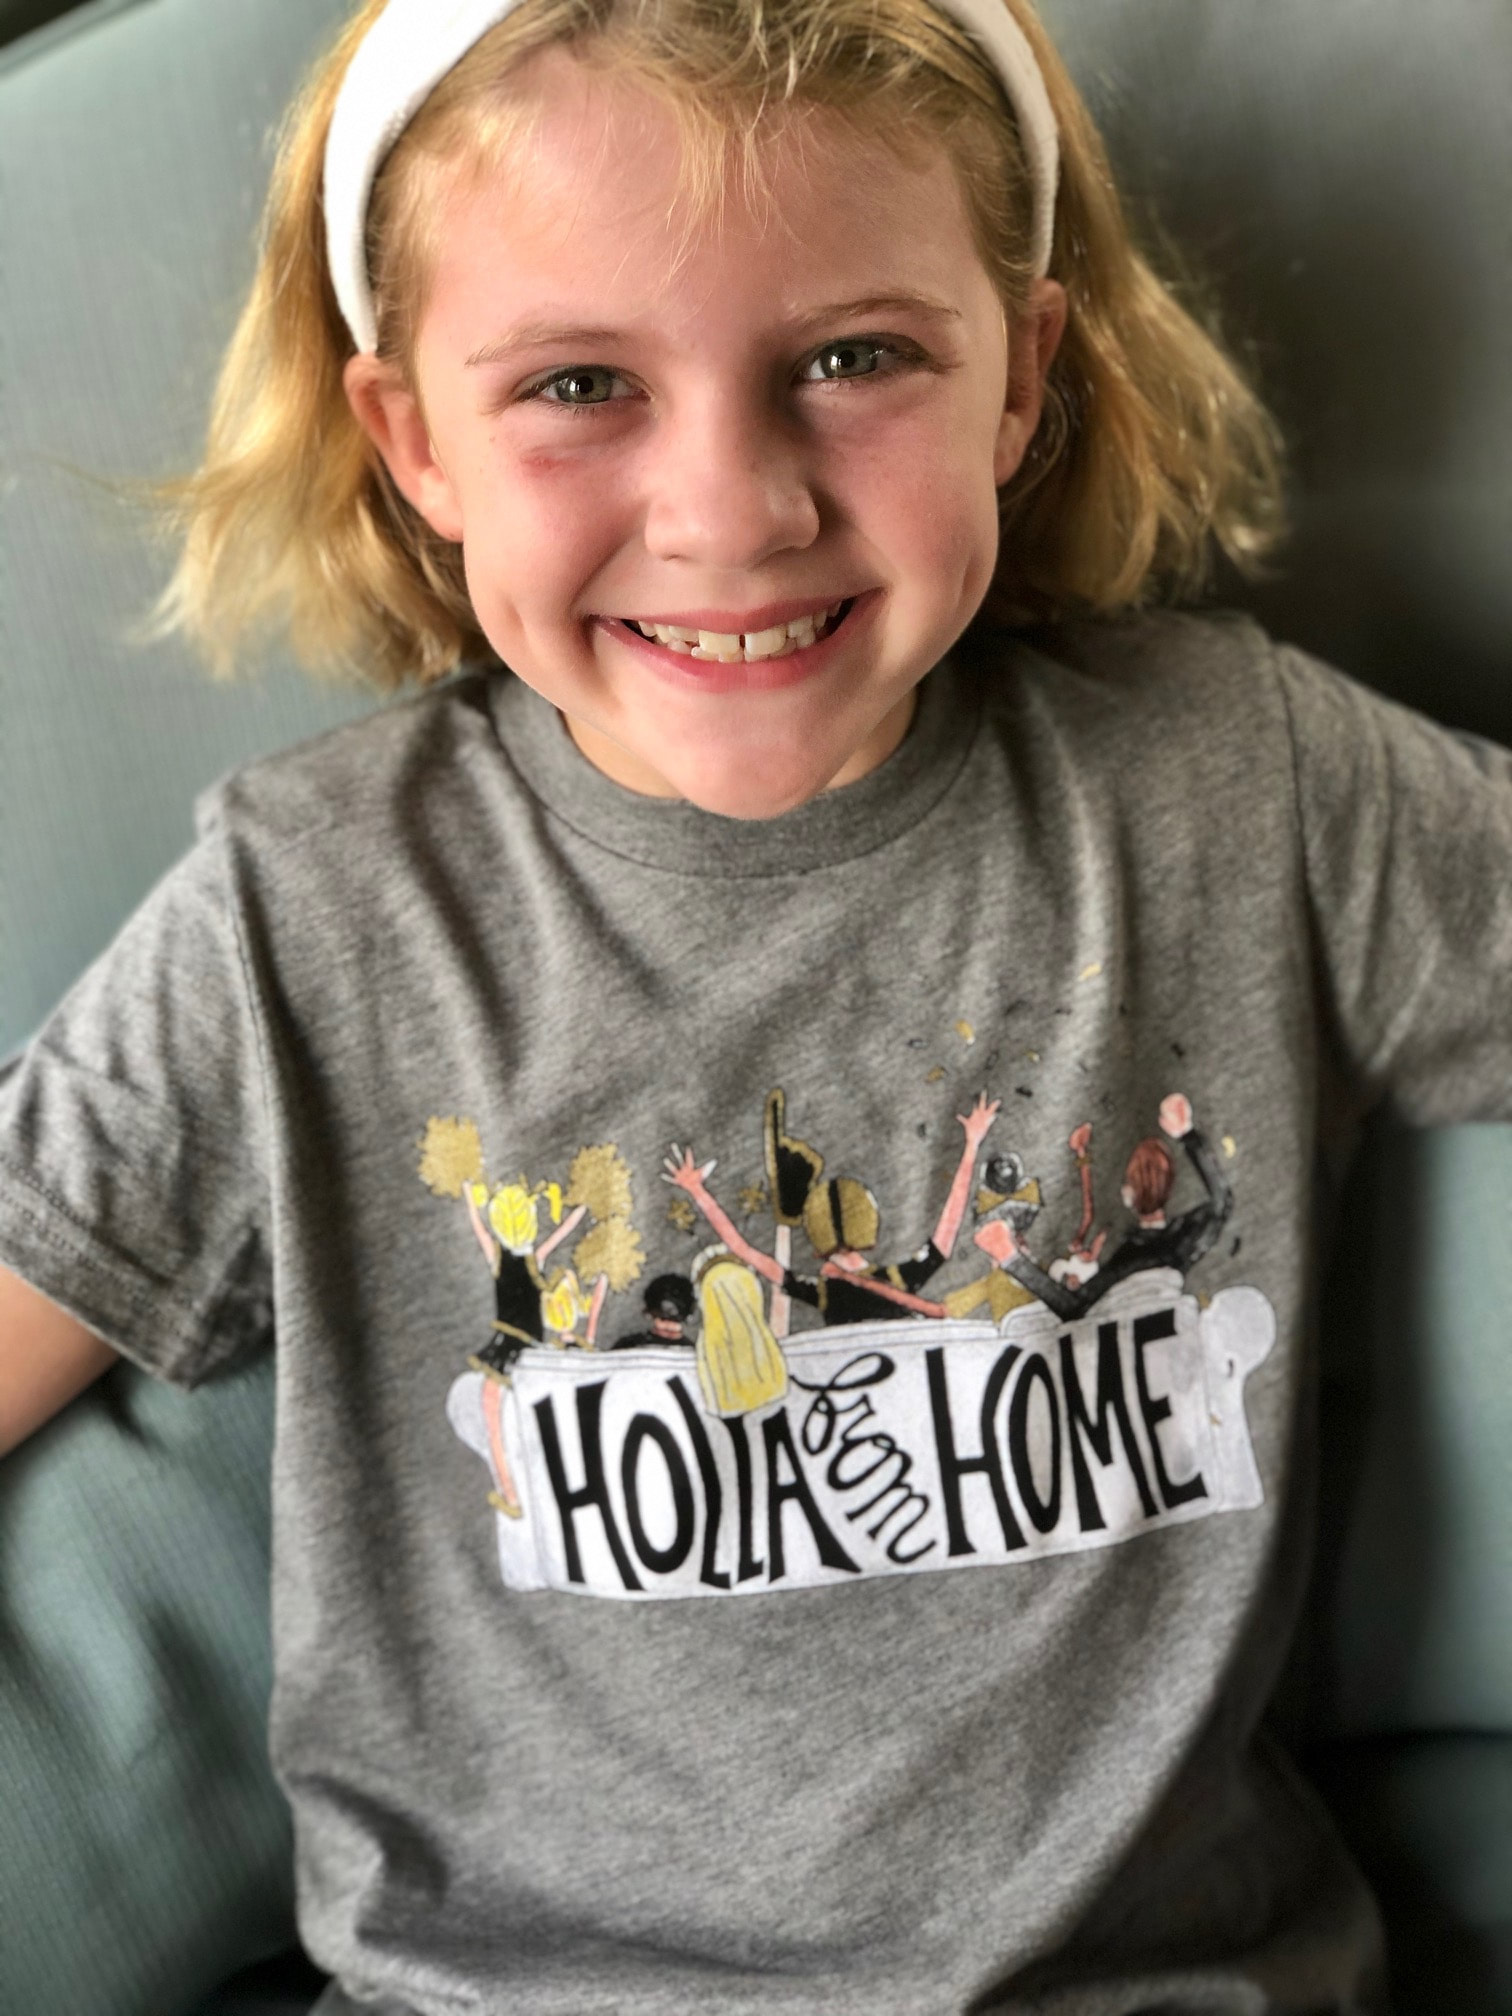 Two Sprouts Holla from Home Toddler T-shirt